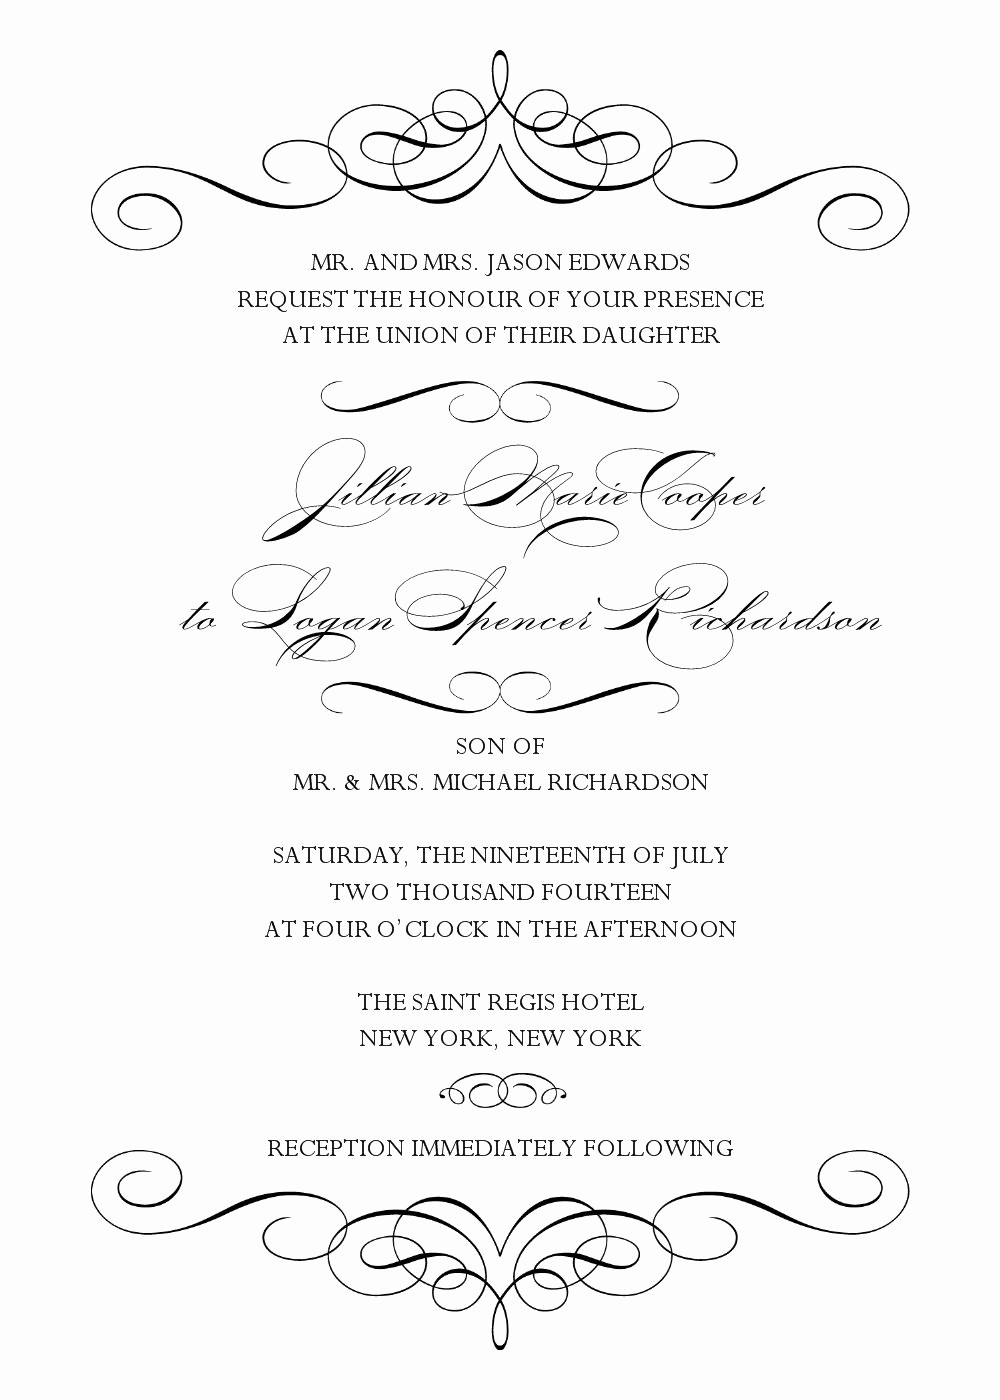 Wedding Invitations Templates Word Free Beautiful Wedding Invitation Wedding Invitation Templates Word